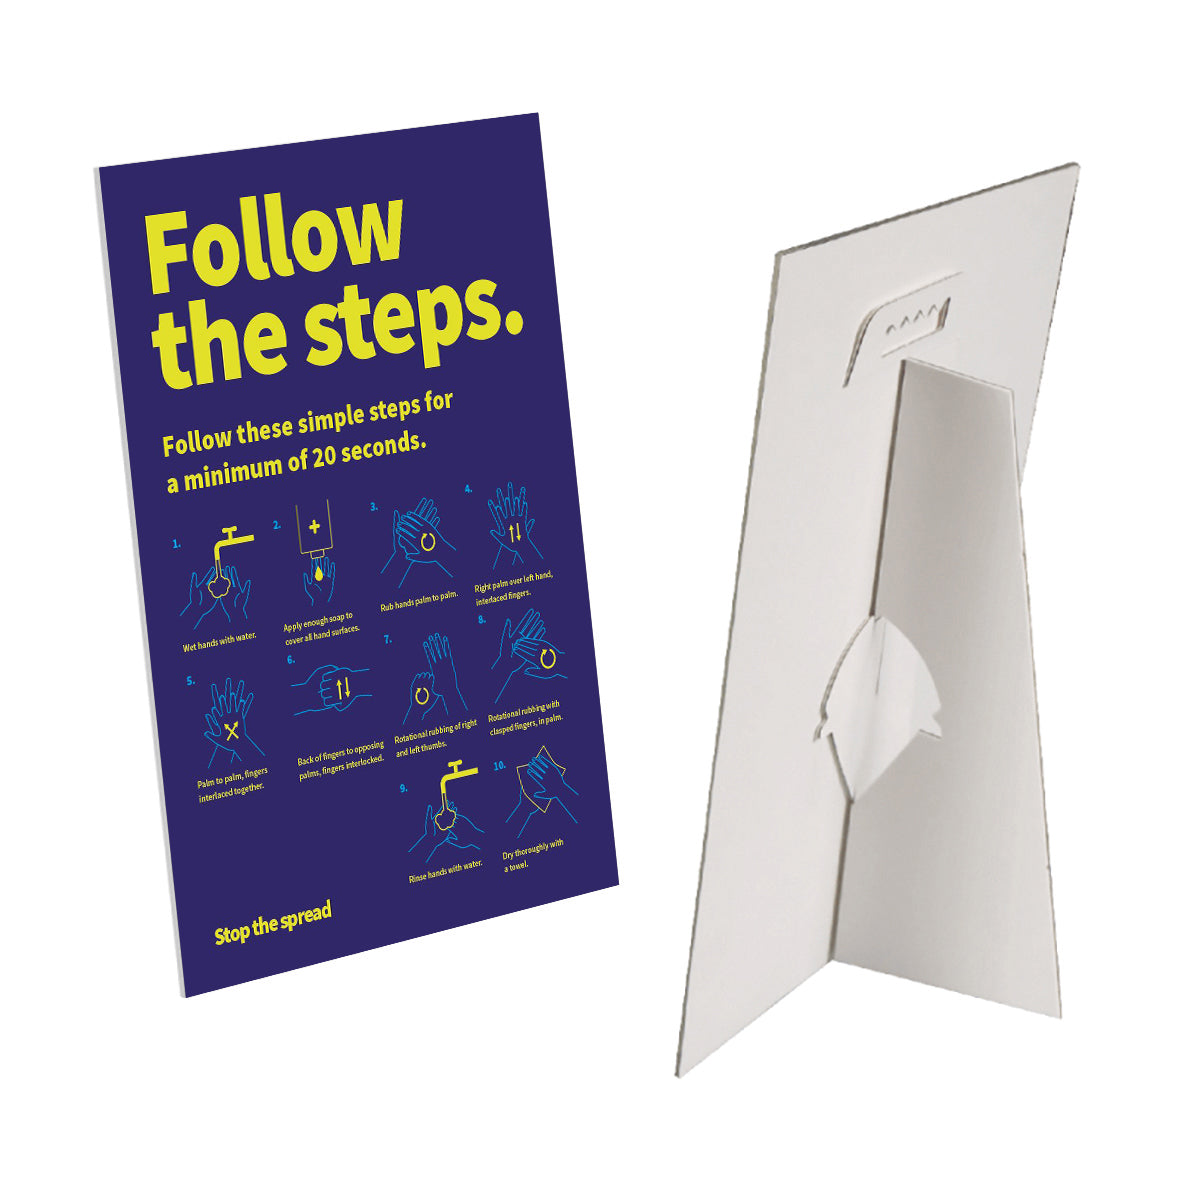 Follow the steps